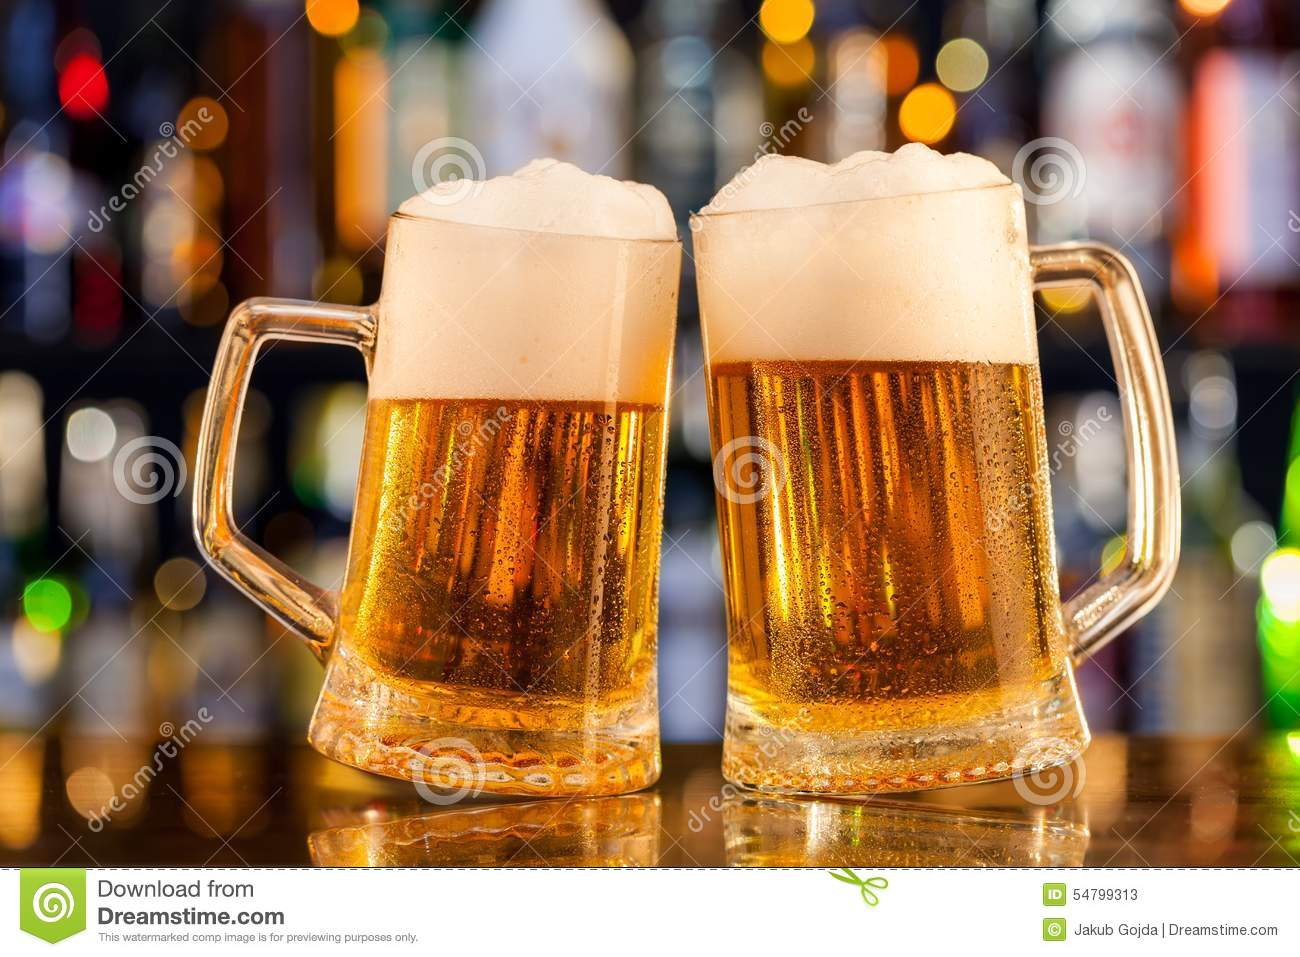 jugs of beer served on bar counter stock image image of nobody